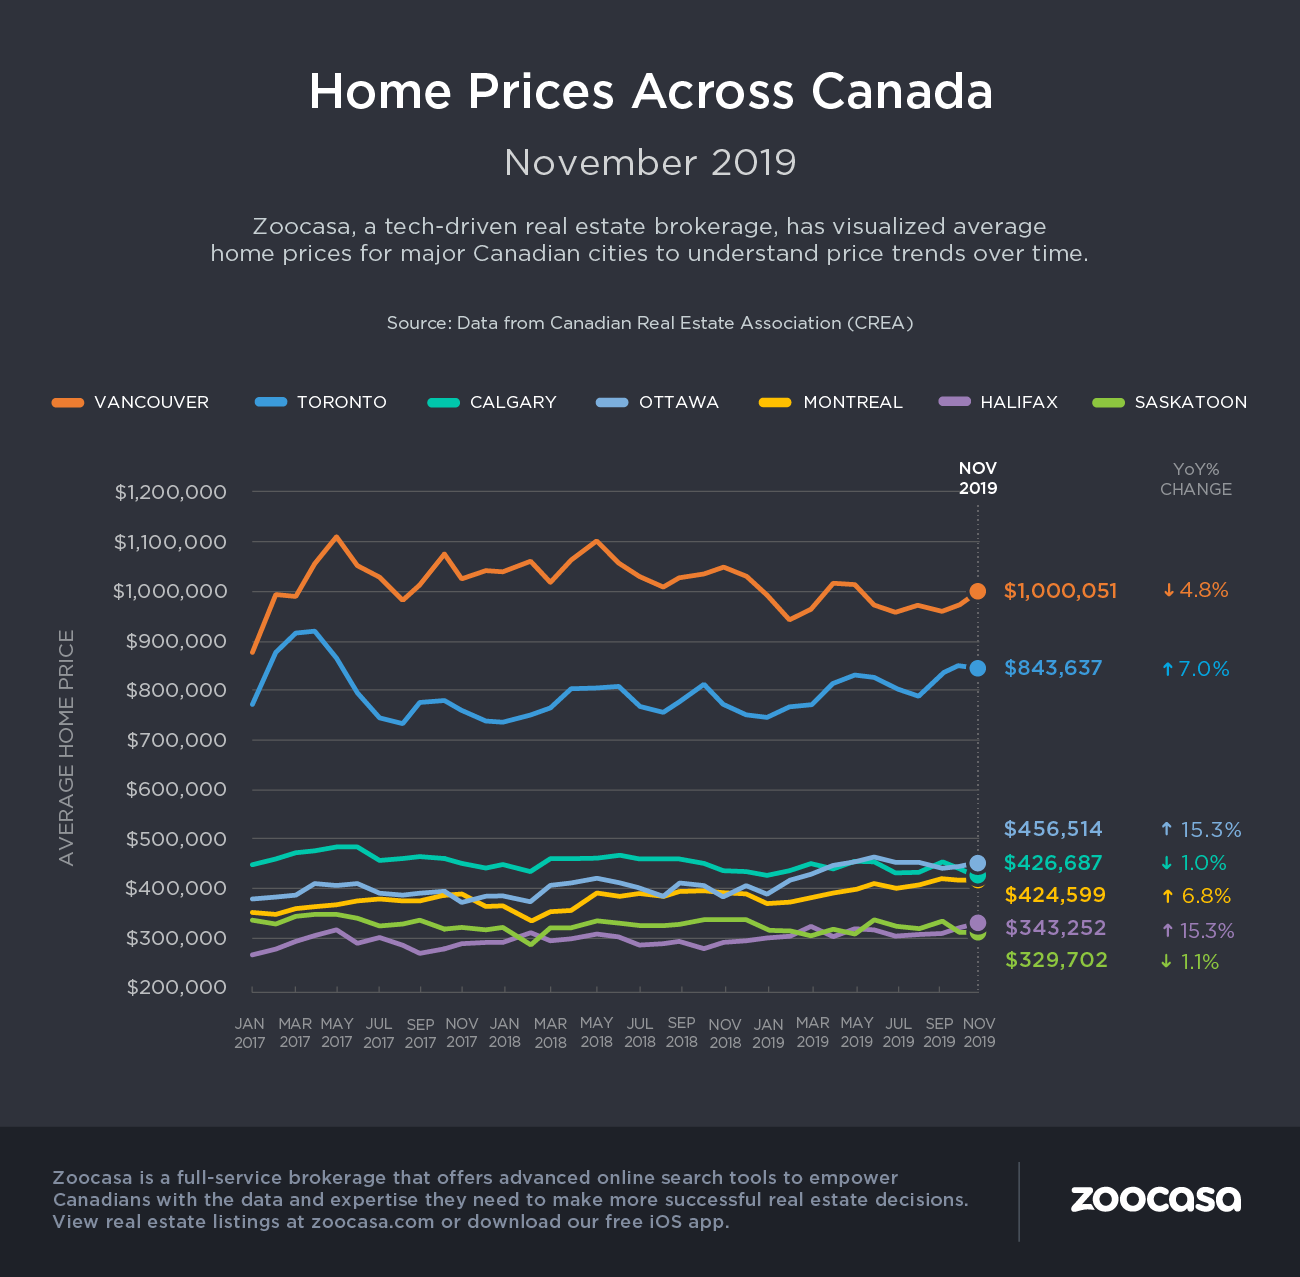 canada-home-prices-nov-2019-zoocasa